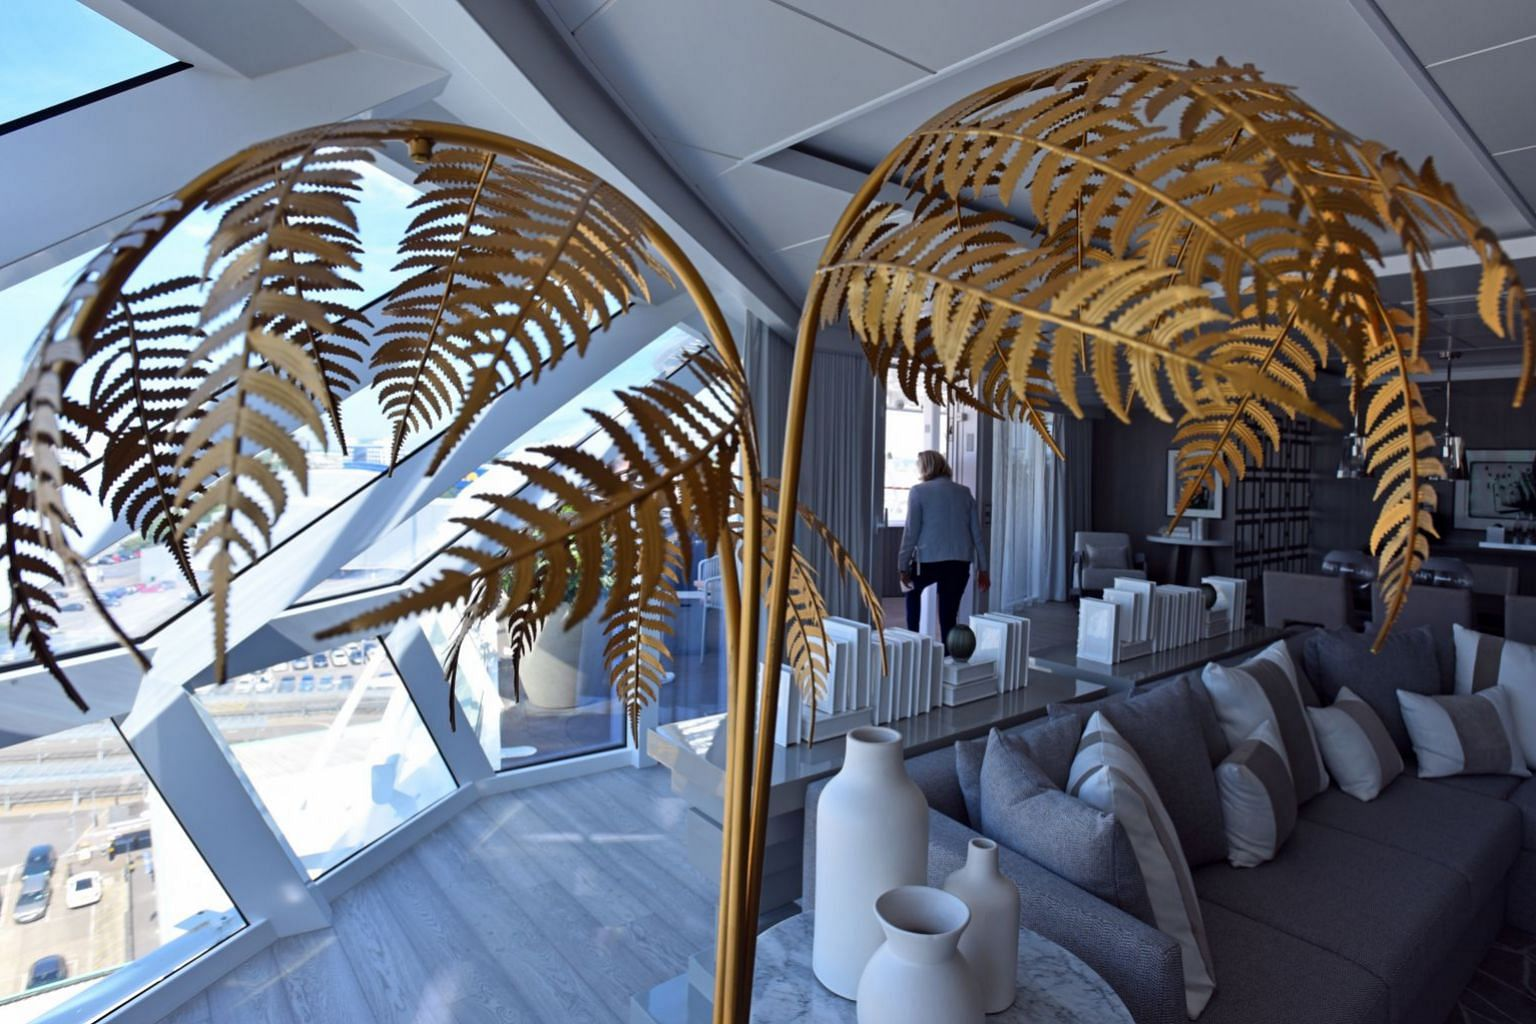 Adding a touch of luxury, many of the tastefully furnished rooms on the Celebrity Edge were designed by famed British designer Kelly Hoppen.